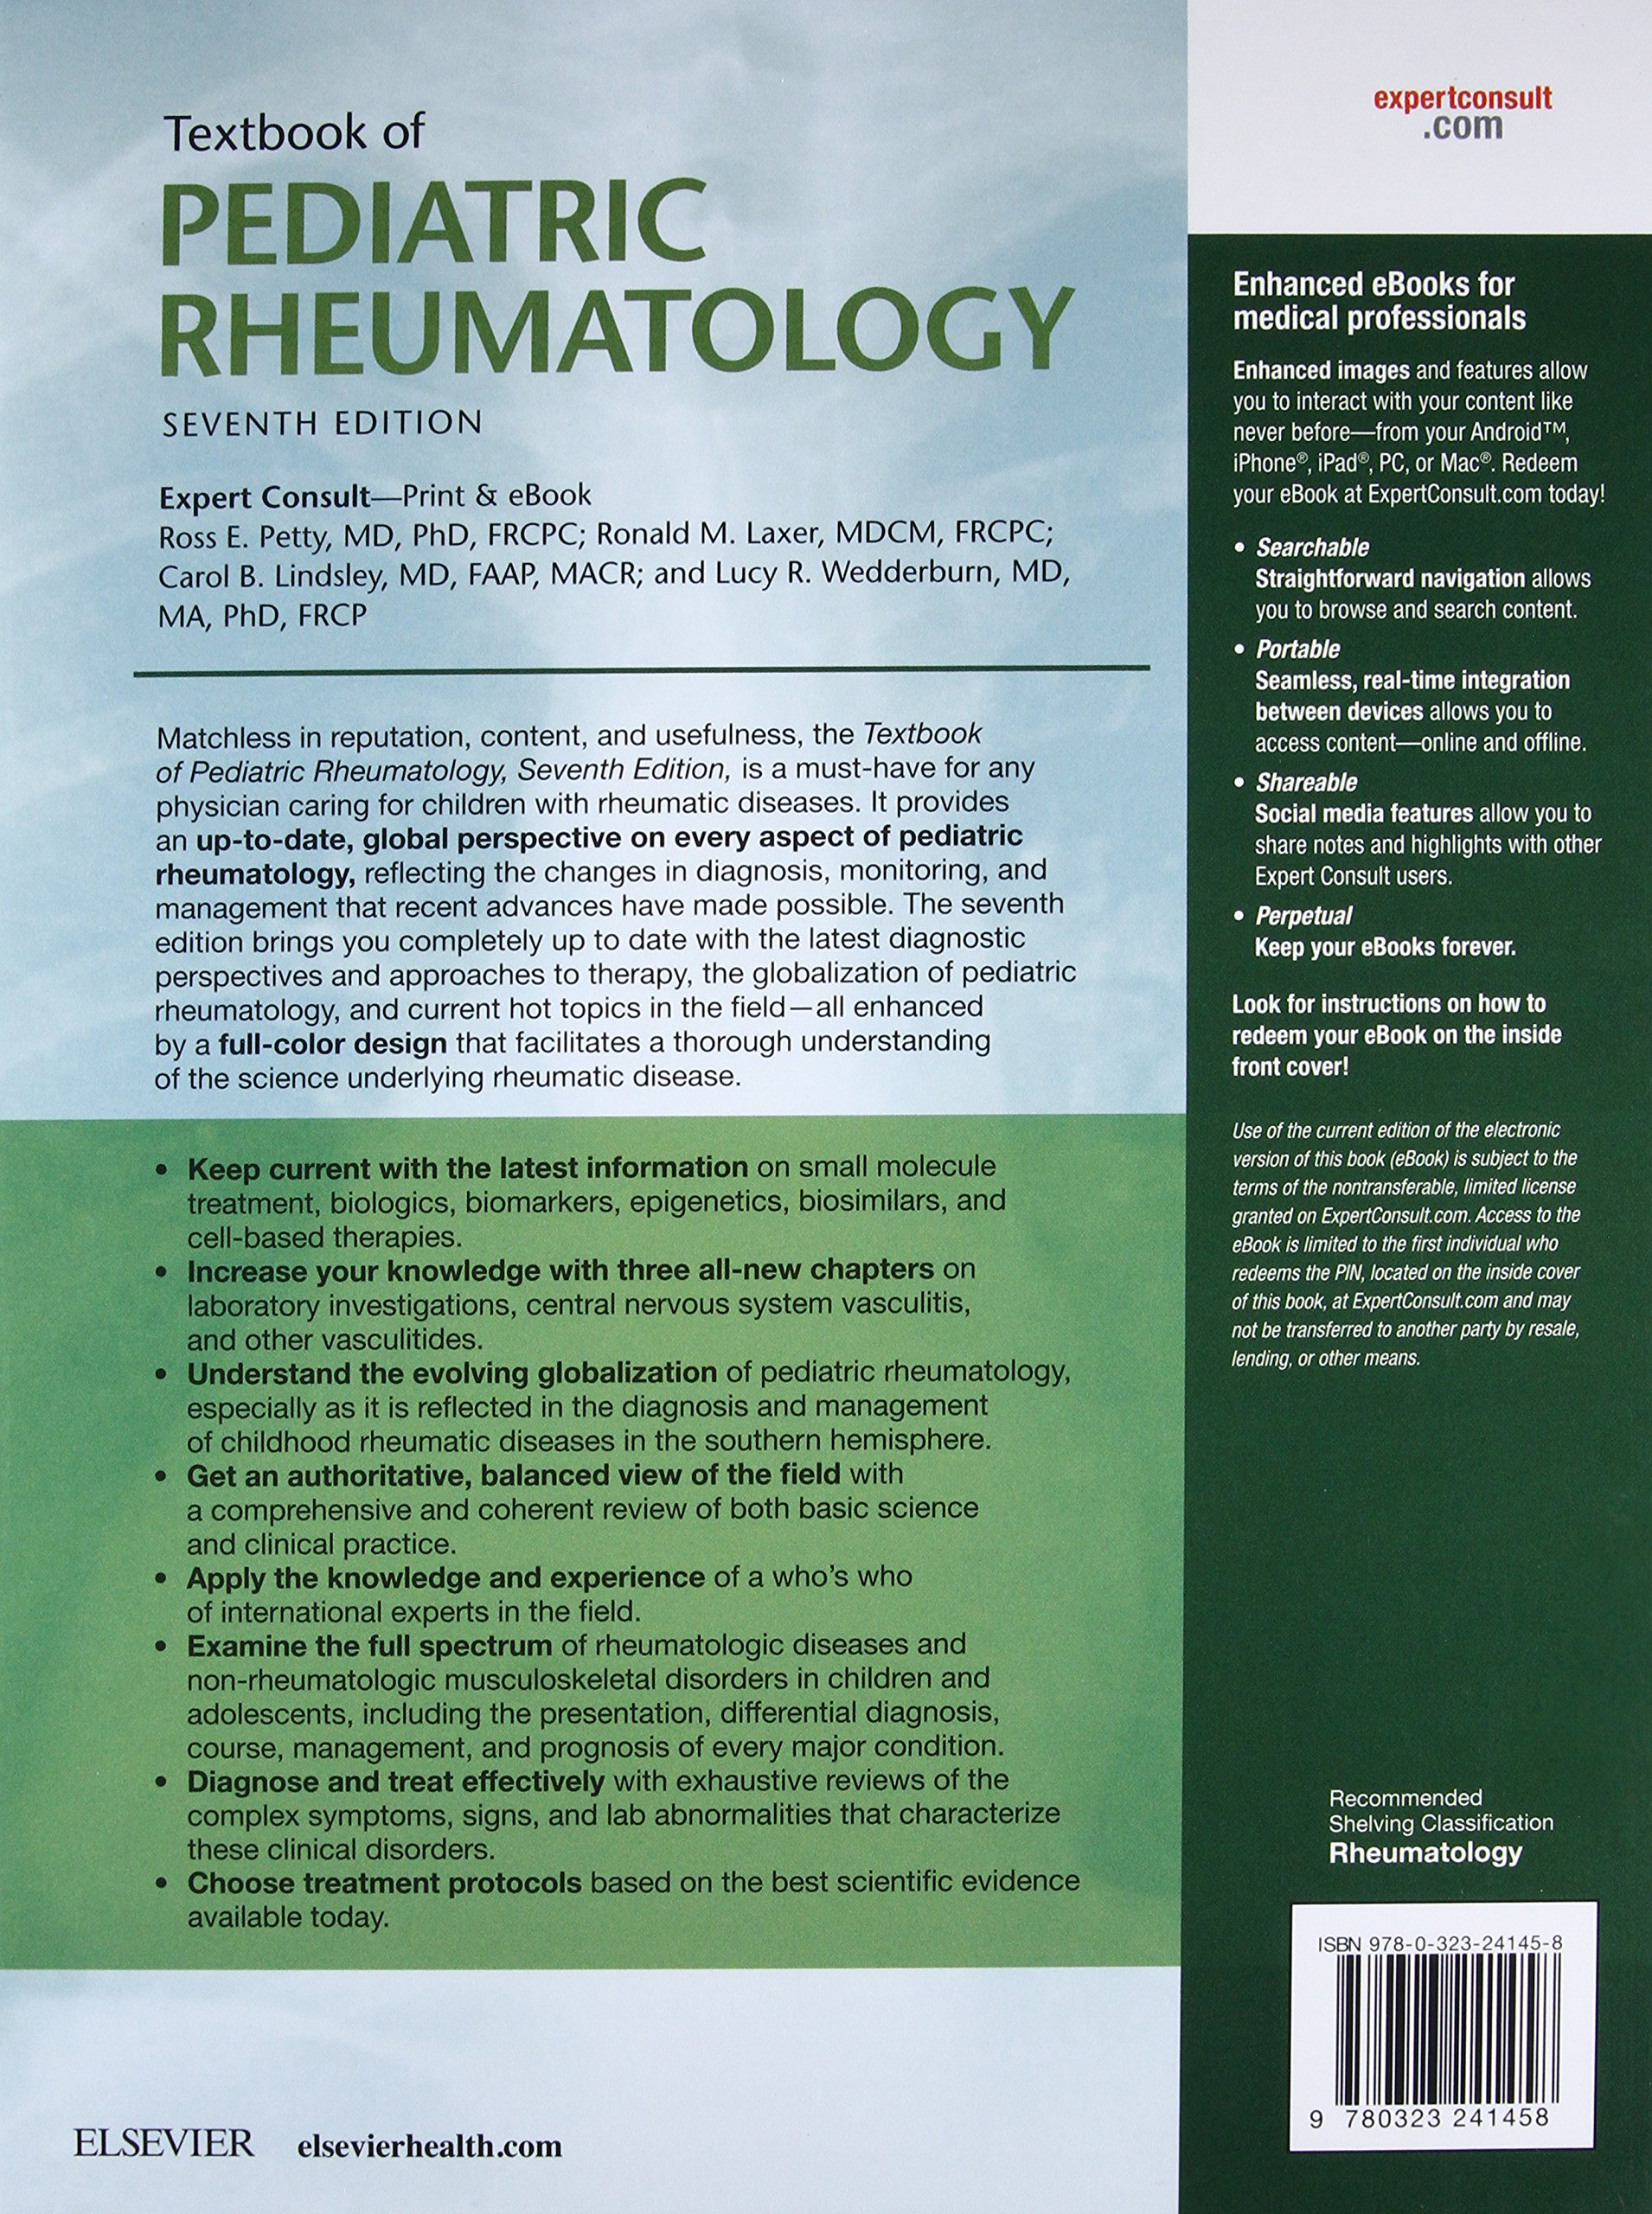 Buy Textbook of Pediatric Rheumatology Book Online at Low Prices in India |  Textbook of Pediatric Rheumatology Reviews & Ratings - Amazon.in